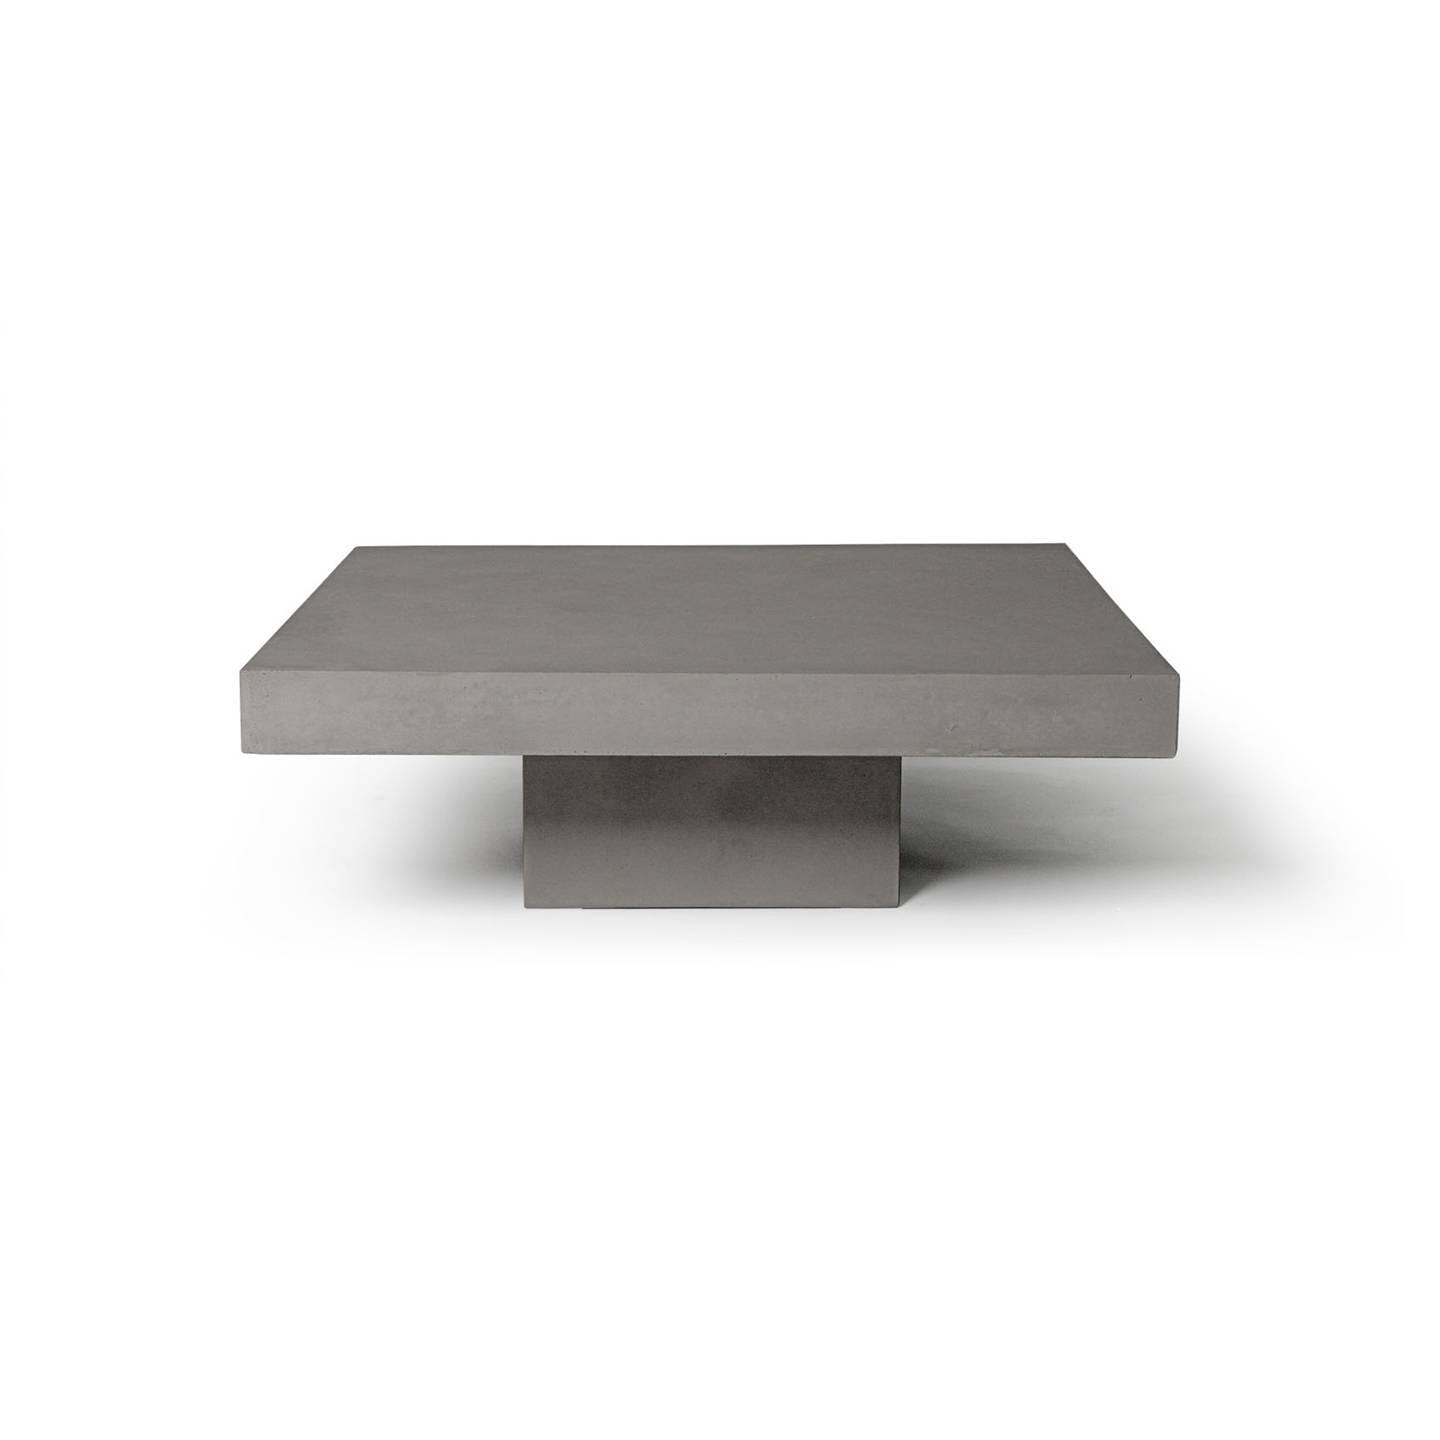 D 09026 Table Basse Beton Carree Design 01 C